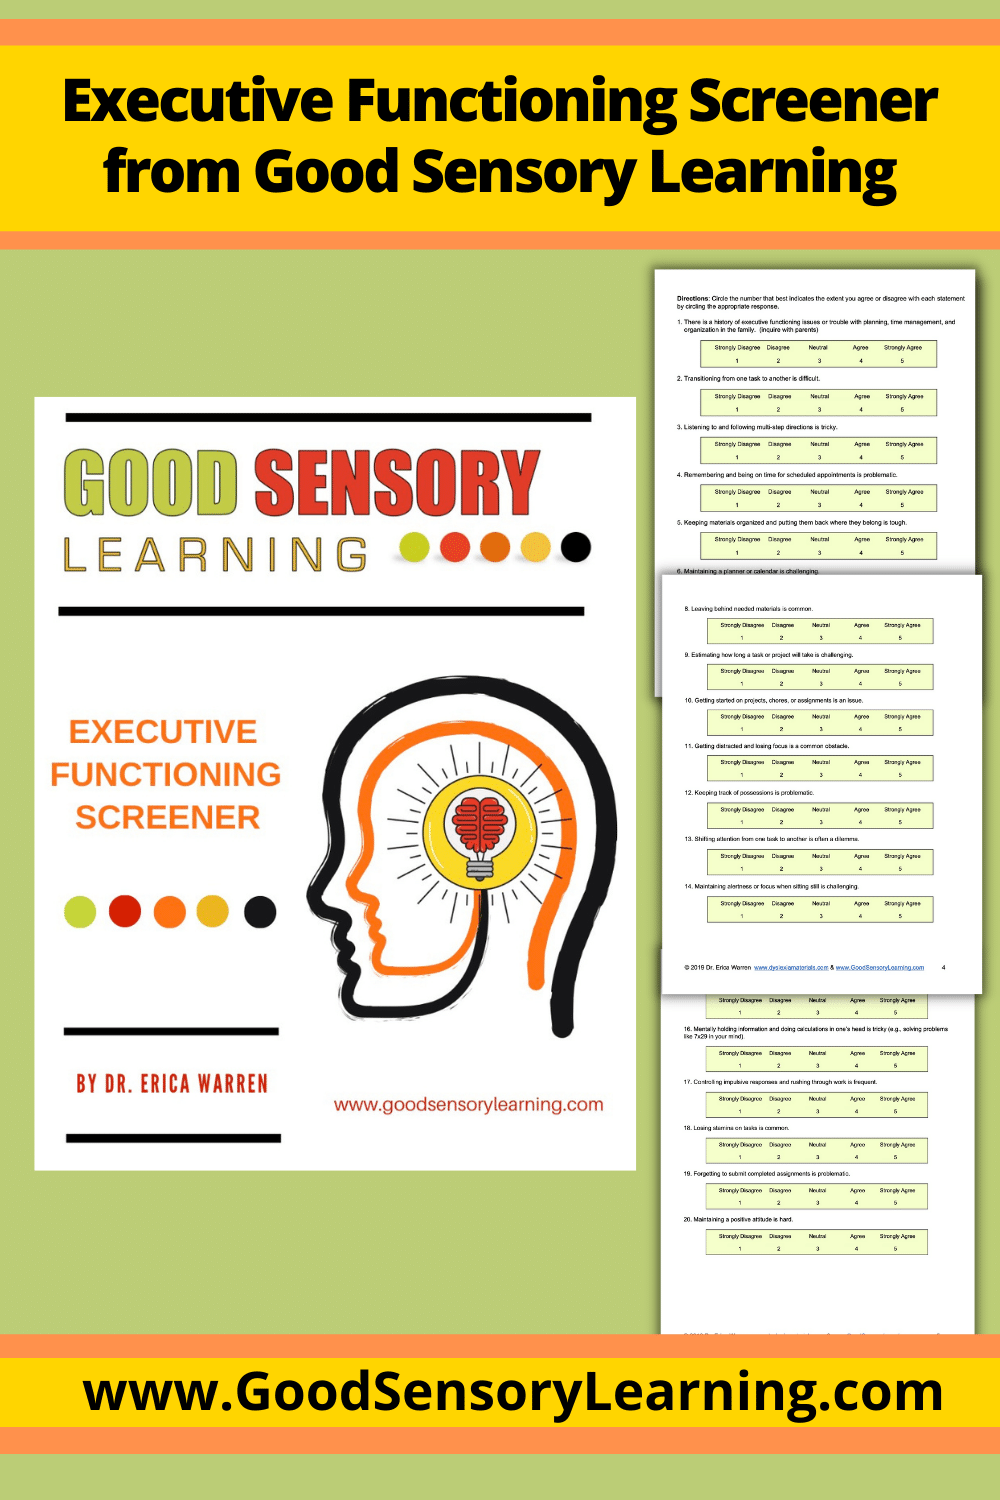 cover picture of executive functioning screener of a brain with a light bulb